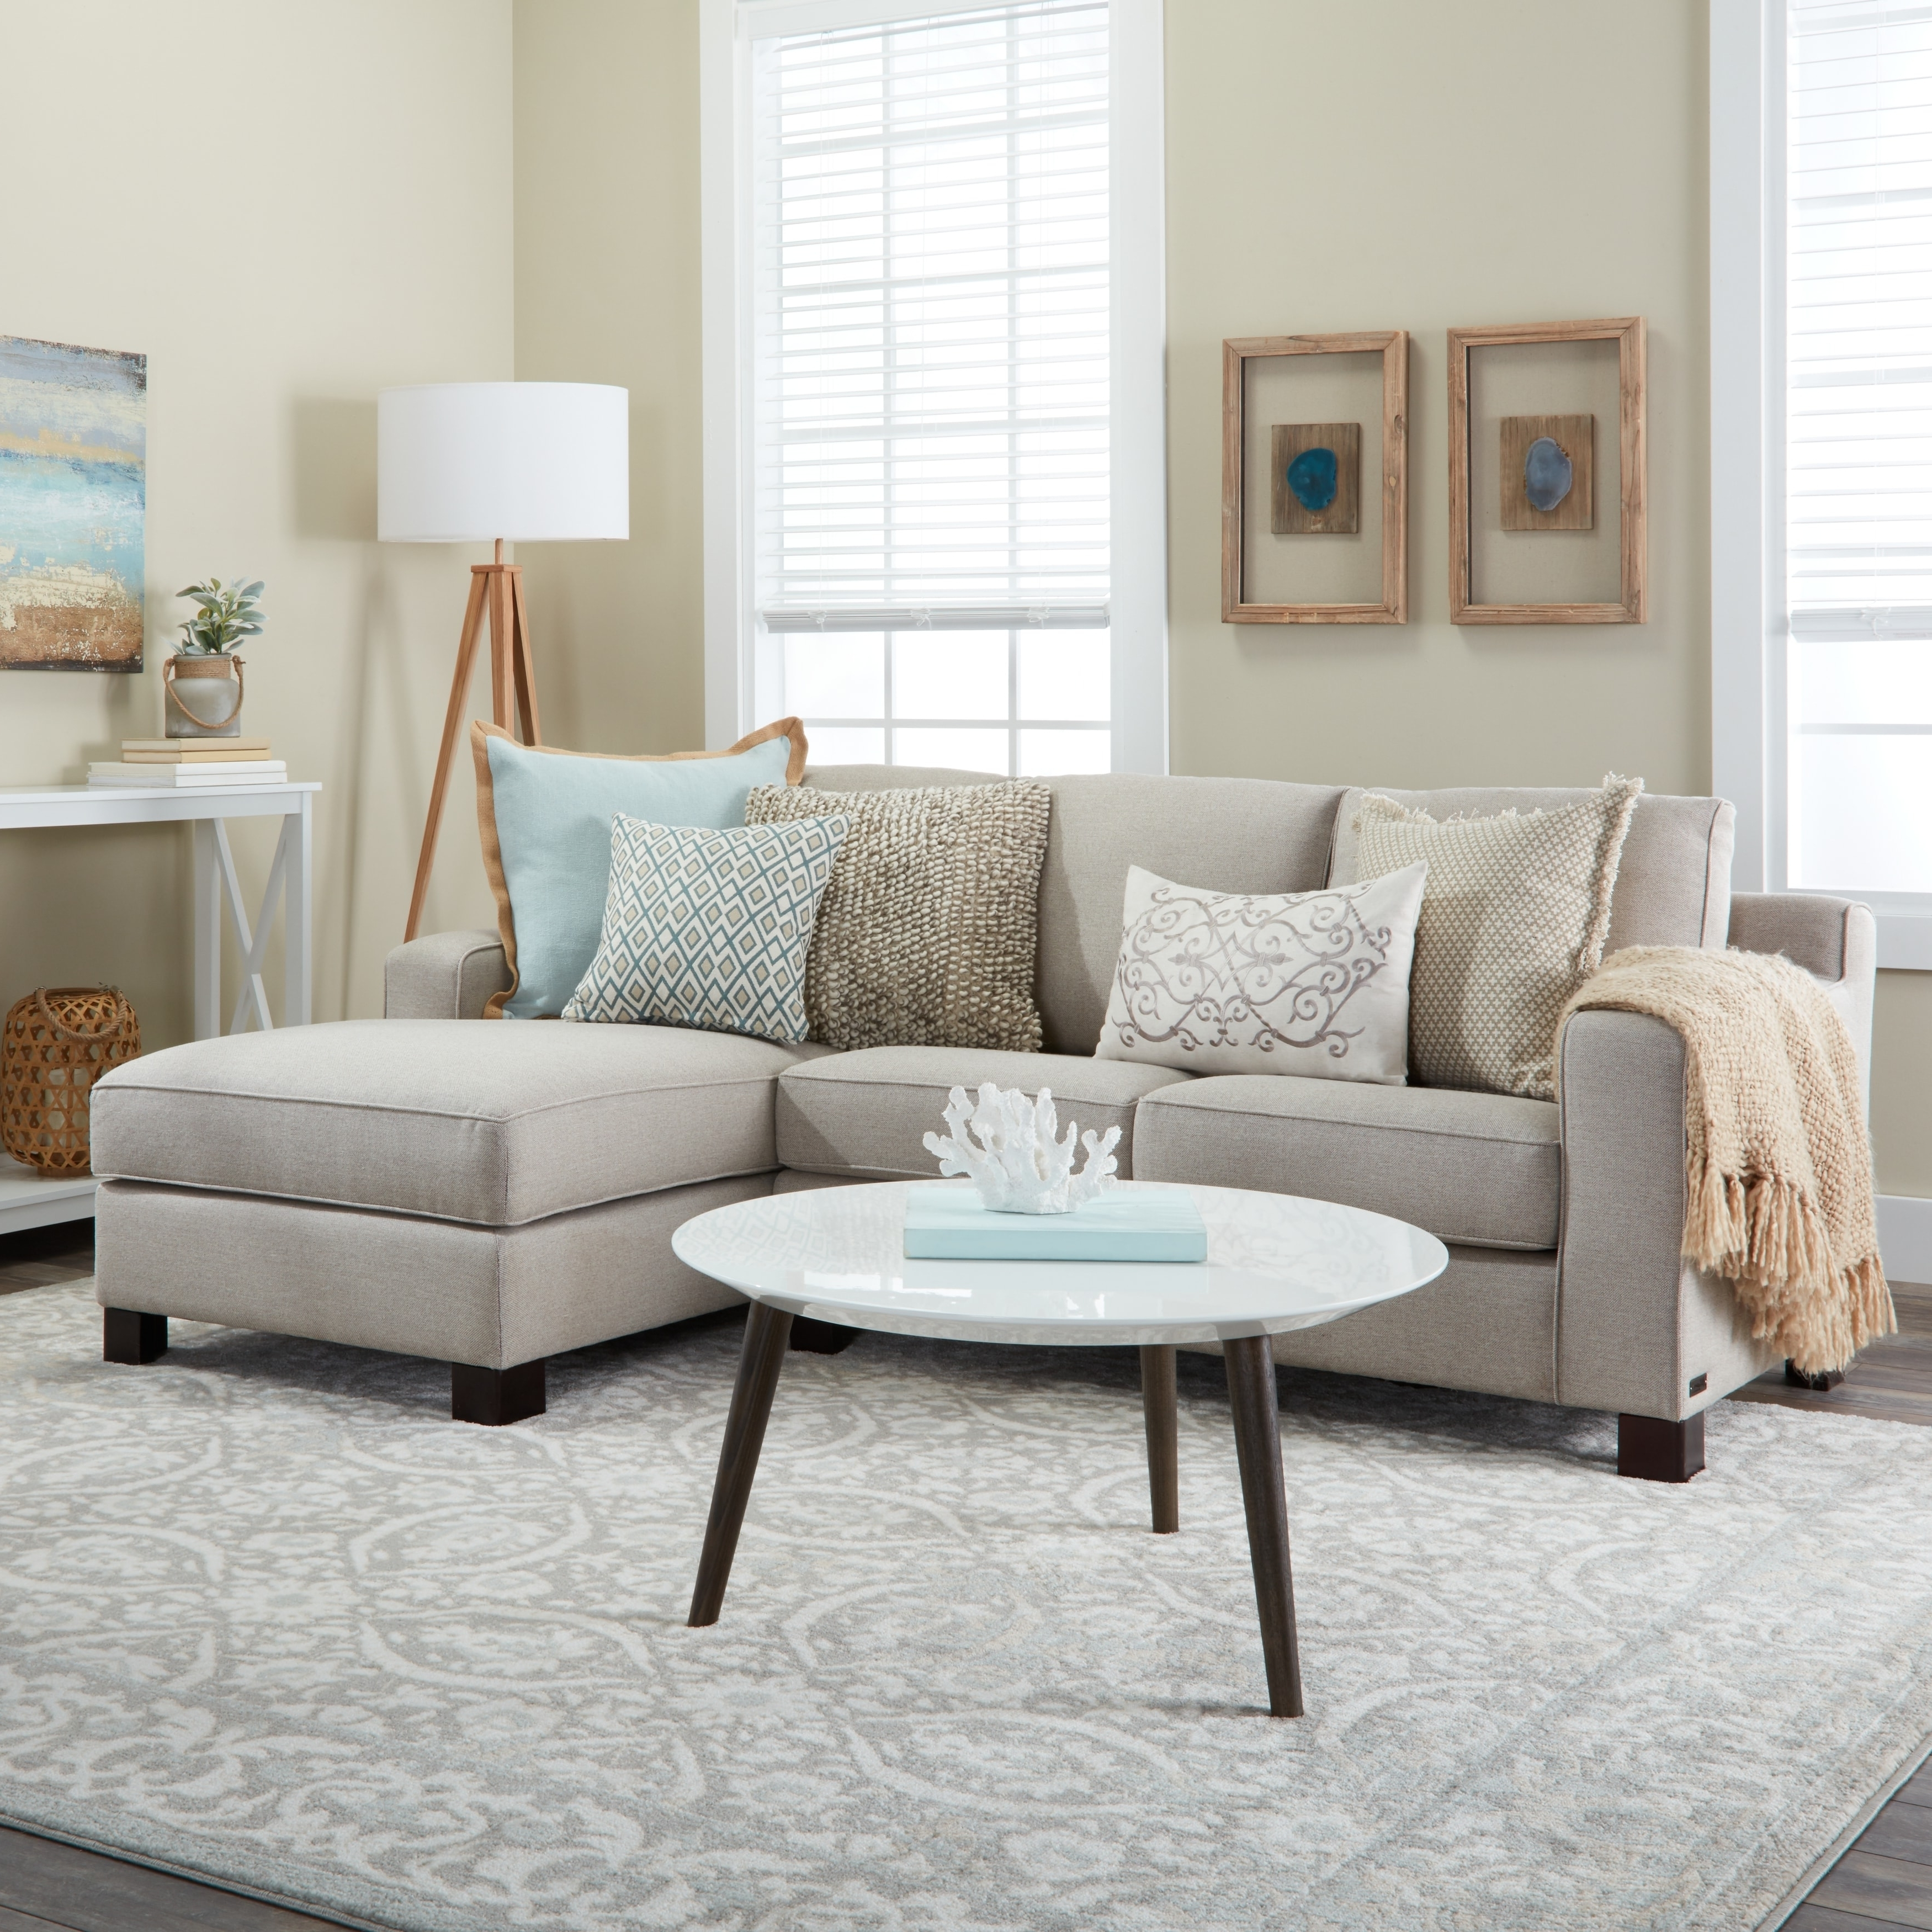 Trendy Light Grey Sectional Sofas With Regard To Sectional Sofa With Chaise In Light Grey – Free Shipping Today (Gallery 19 of 20)